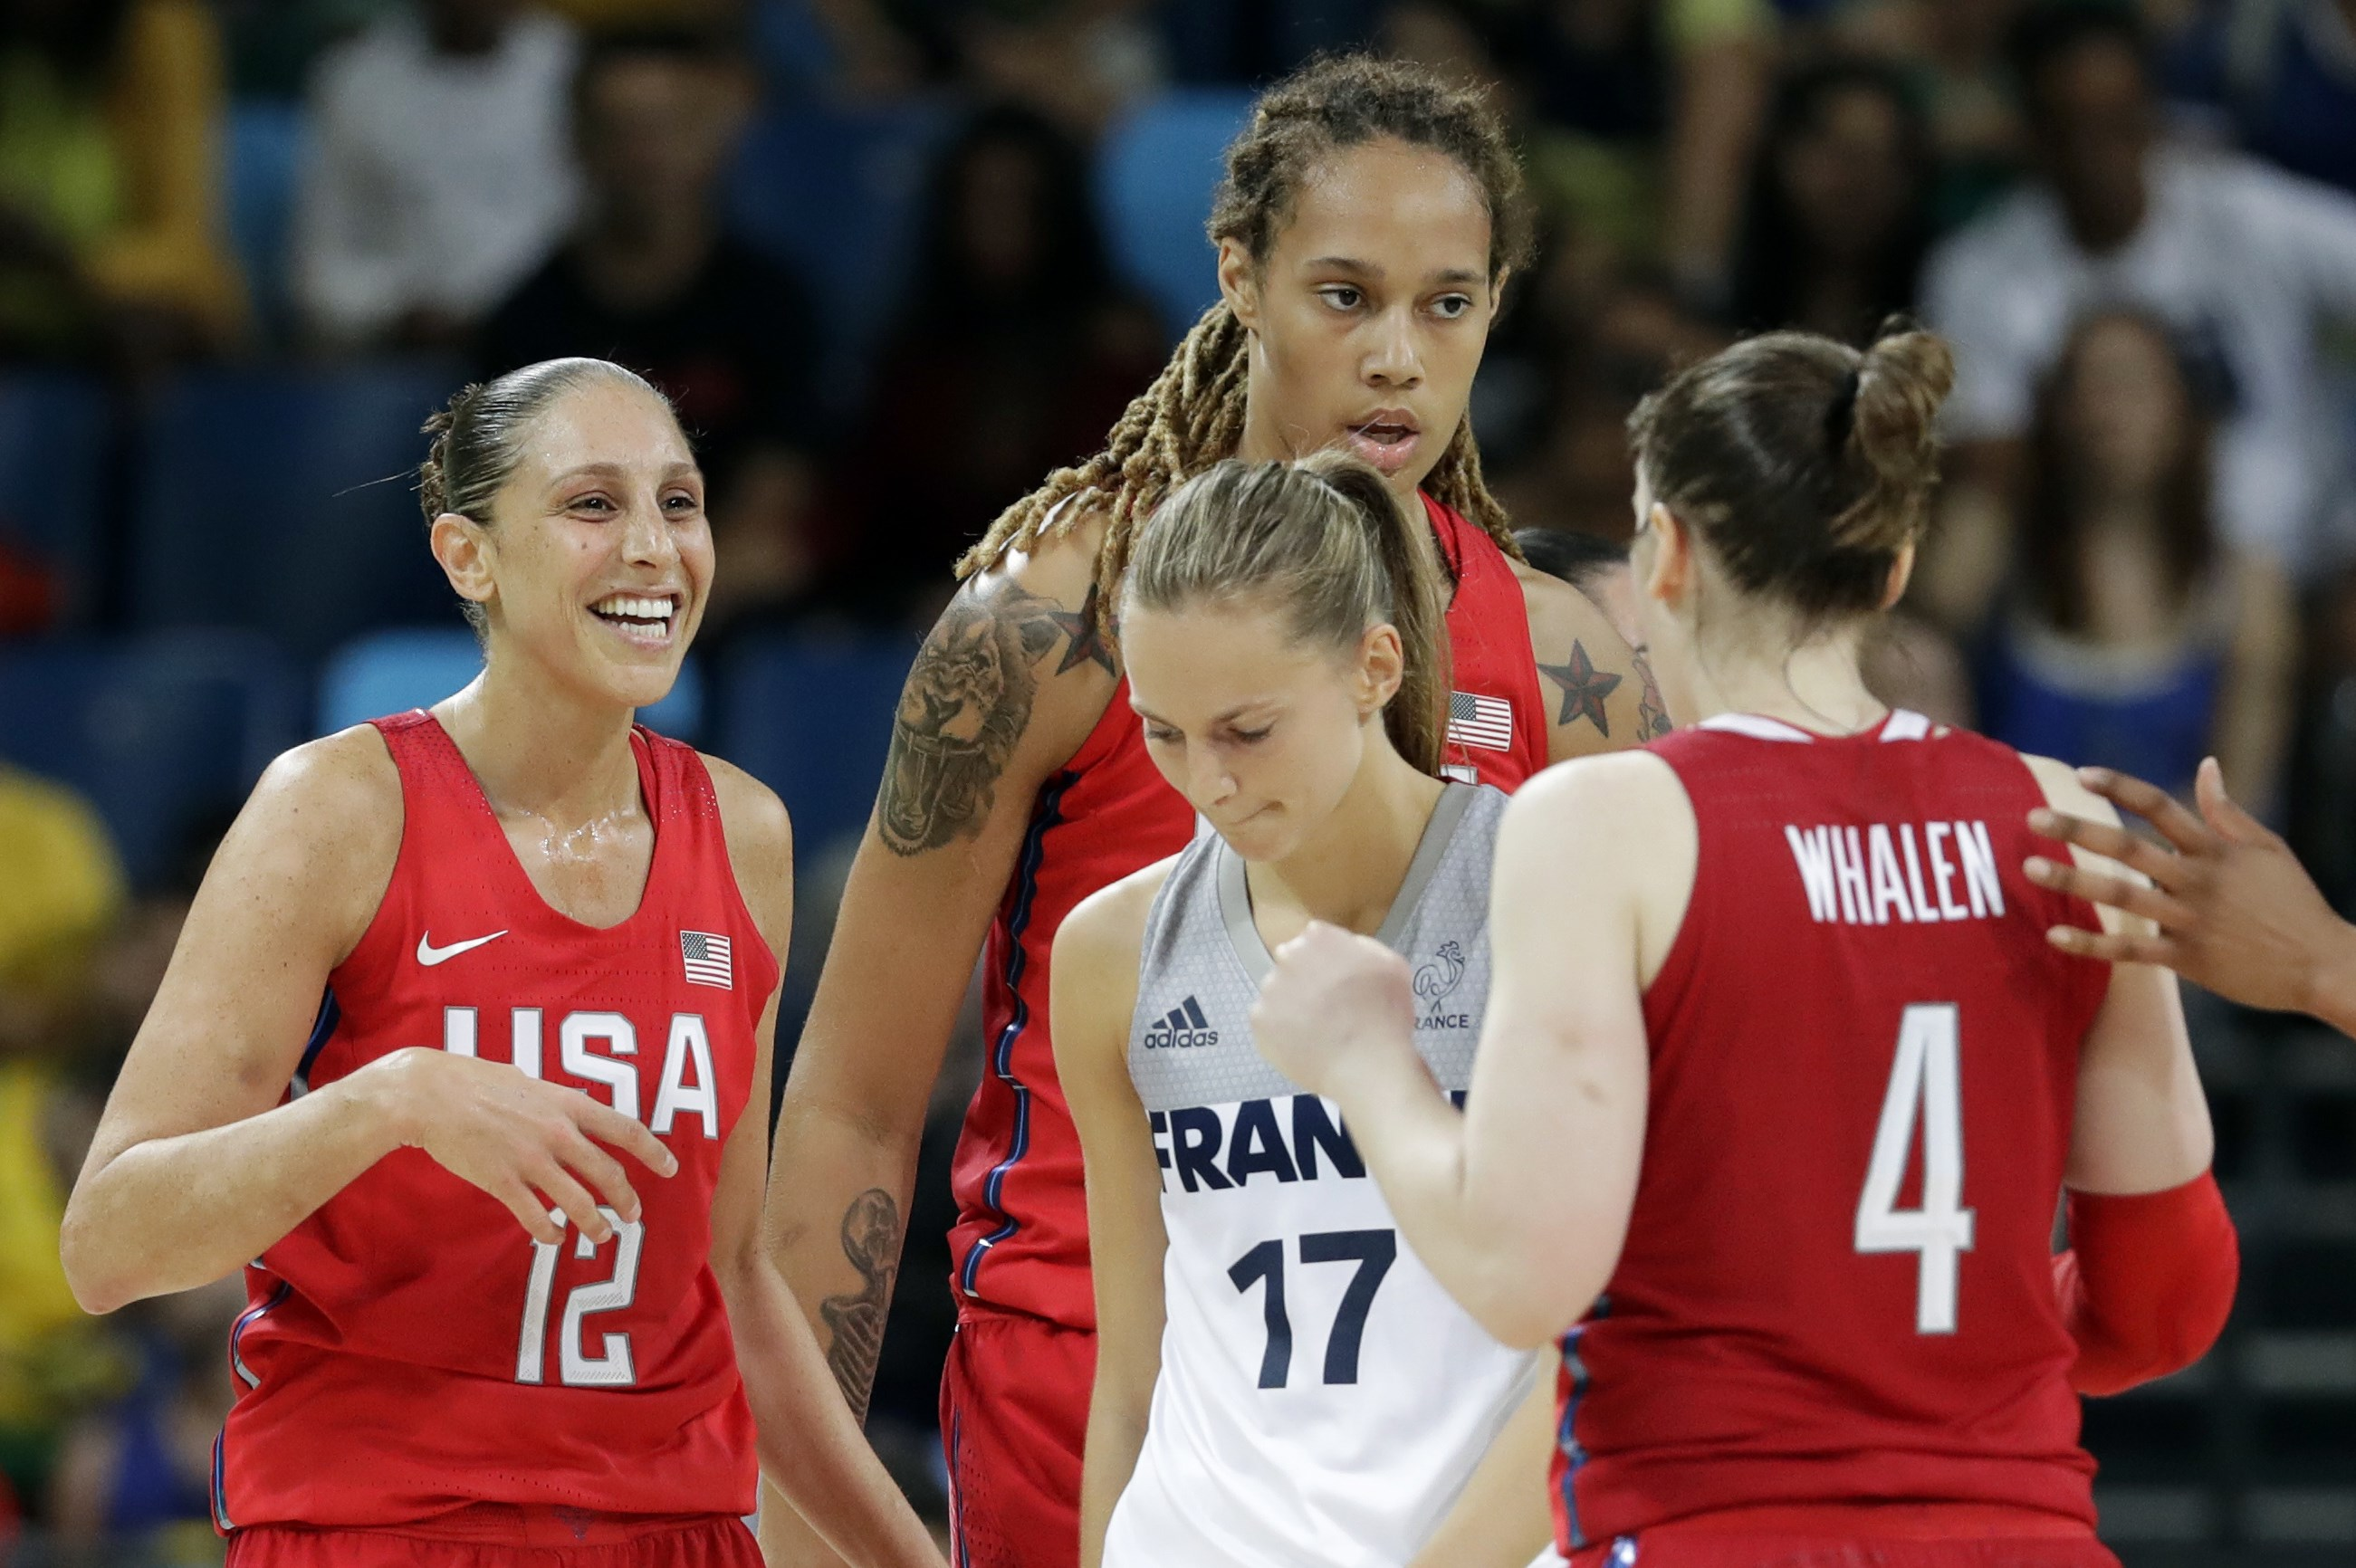 United States' Diana Taurasi (12) celebrates with teammates Lindsay Whalen (4) and Brittney Griner, rear, in front of France's Marine Johannes (17) during a semifinal round basketball game at the 2016 Summer Olympics in Rio de Janeiro, Brazil, Thursday, A